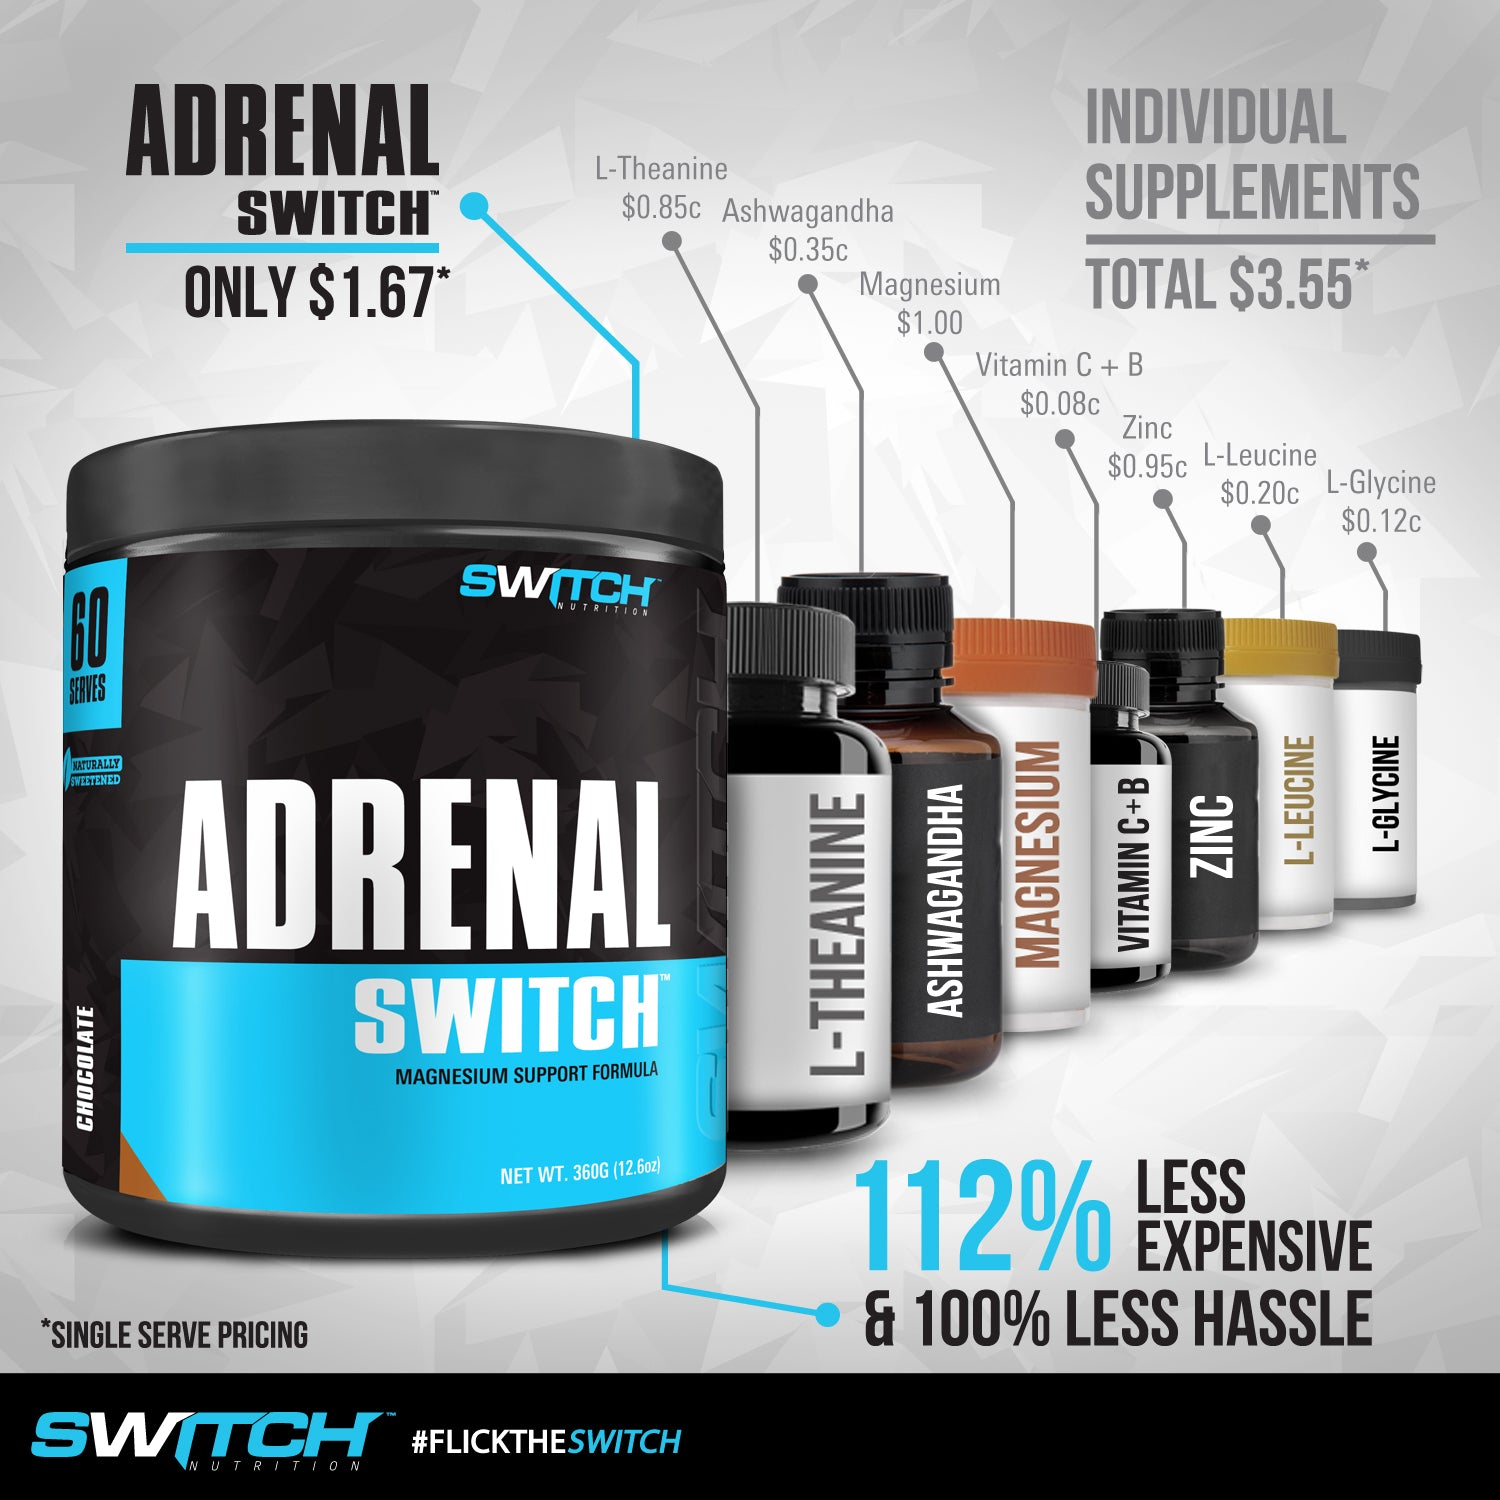 5 MAJOR BENEFITS OF THIS SUPER FORMULA: ADRENAL SWITCH™